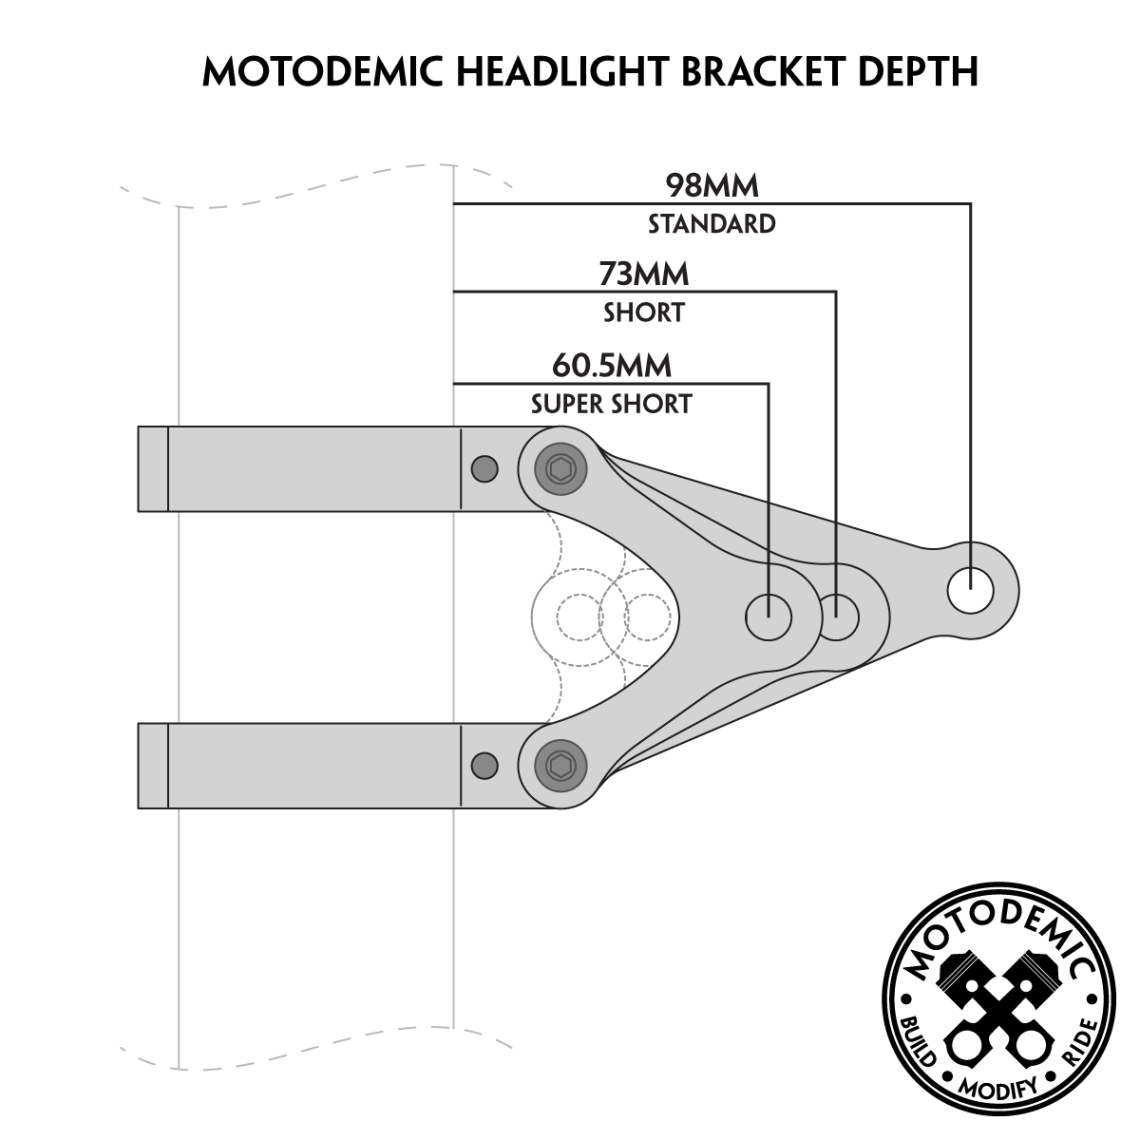 Bates Headlight Wiring Diagram Library Toyota Solara 41mm Moto Demic Brackets Triumph